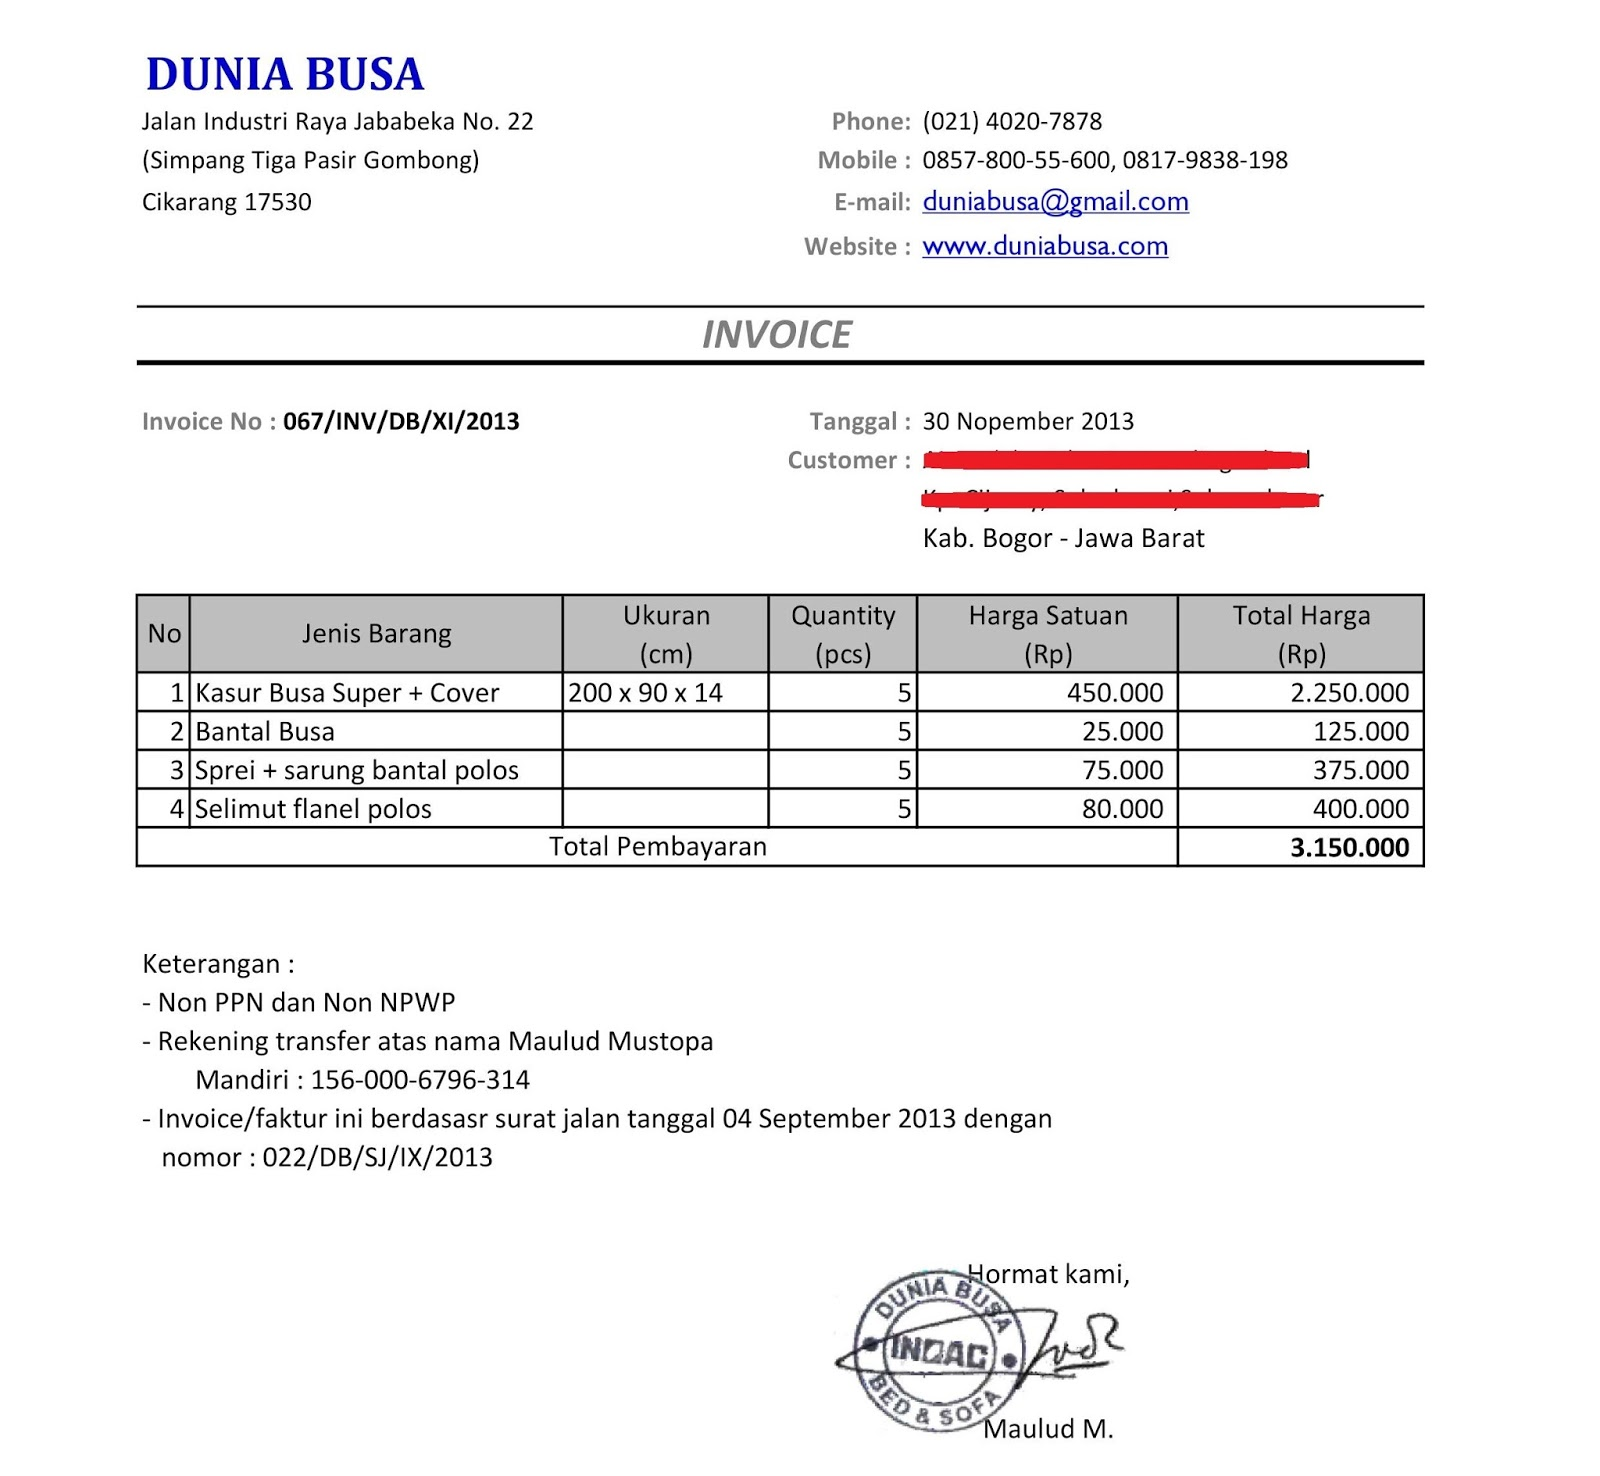 Centralasianshepherdus  Unique Free Invoice Online  Create Invoice Online  Invoice Template  With Glamorous Contoh Format Invoice Atau Surat Tagihan  Brankas Arsip  Free Invoice Online With Cute Work Order Invoices Also Overdue Invoice Reminder In Addition Sage Invoices And Rbs Invoice Finance Ltd As Well As What Is A Proforma Invoice Used For Additionally Invoice Software Australia From Sklepco With Centralasianshepherdus  Glamorous Free Invoice Online  Create Invoice Online  Invoice Template  With Cute Contoh Format Invoice Atau Surat Tagihan  Brankas Arsip  Free Invoice Online And Unique Work Order Invoices Also Overdue Invoice Reminder In Addition Sage Invoices From Sklepco